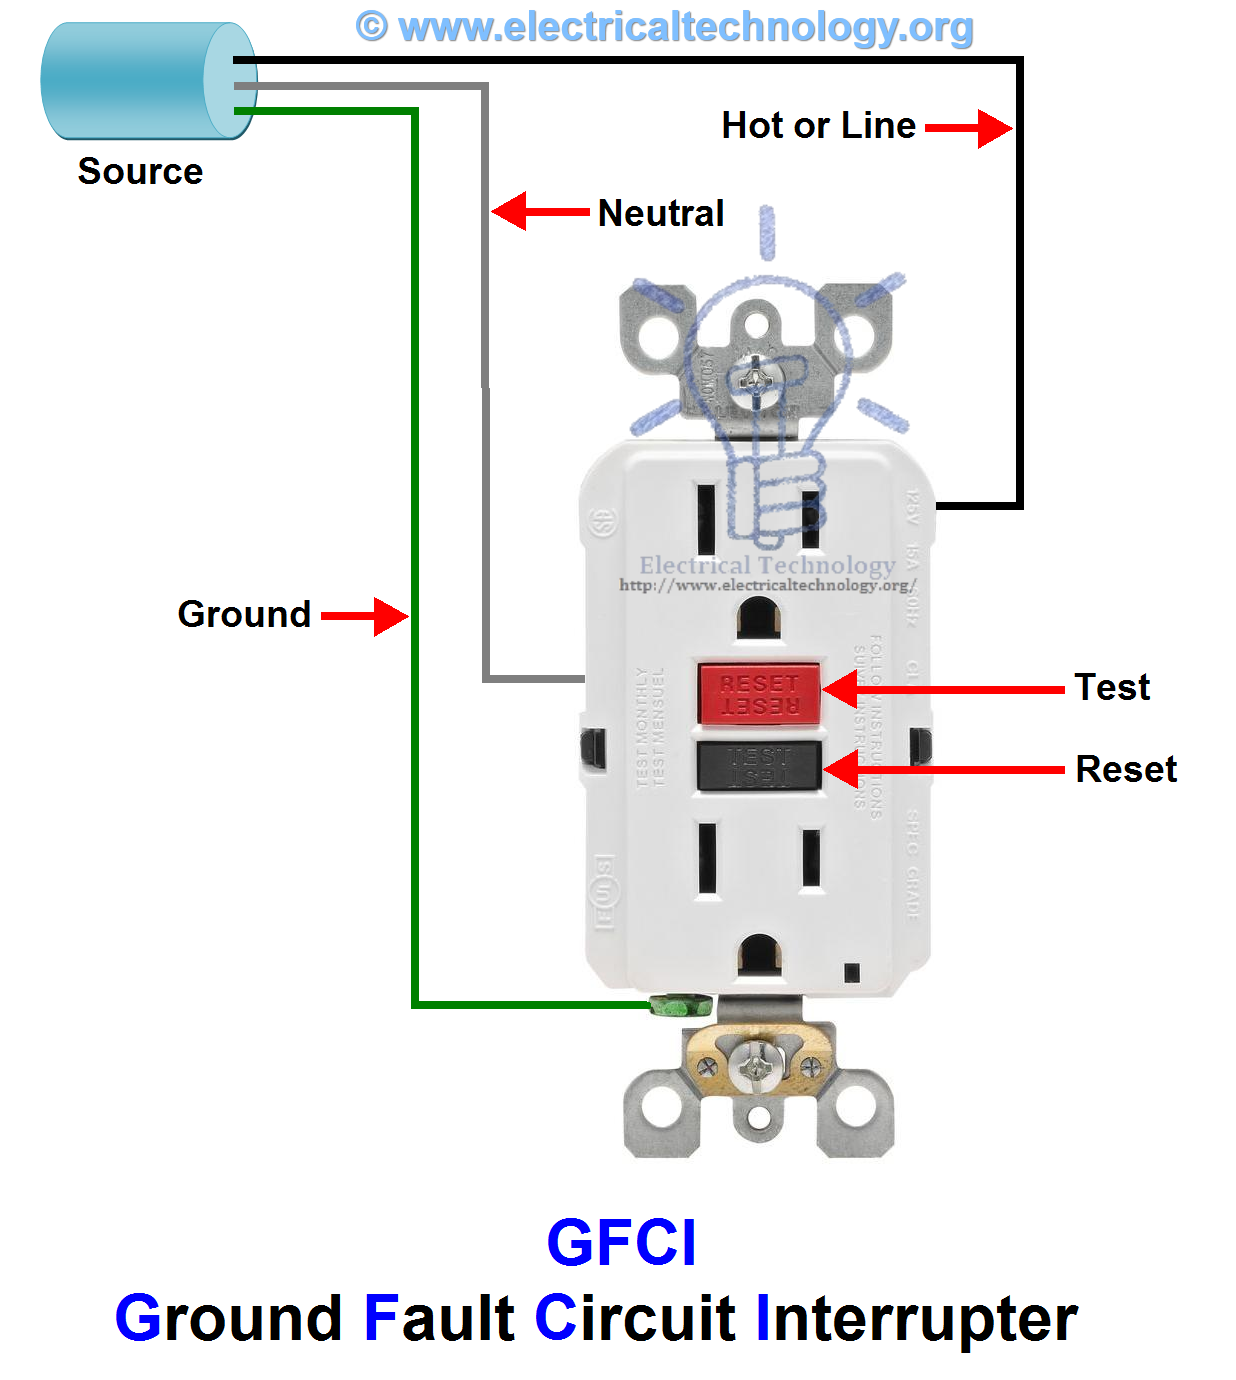 Ground Fault Wiring - Wiring Diagram Progresif on ground fault relay wiring diagram, ground fault indicator wiring diagram, ground fault interrupter circuit breaker, arc fault wiring diagram, ground fault interrupter cable, ground fault breaker wiring diagram,